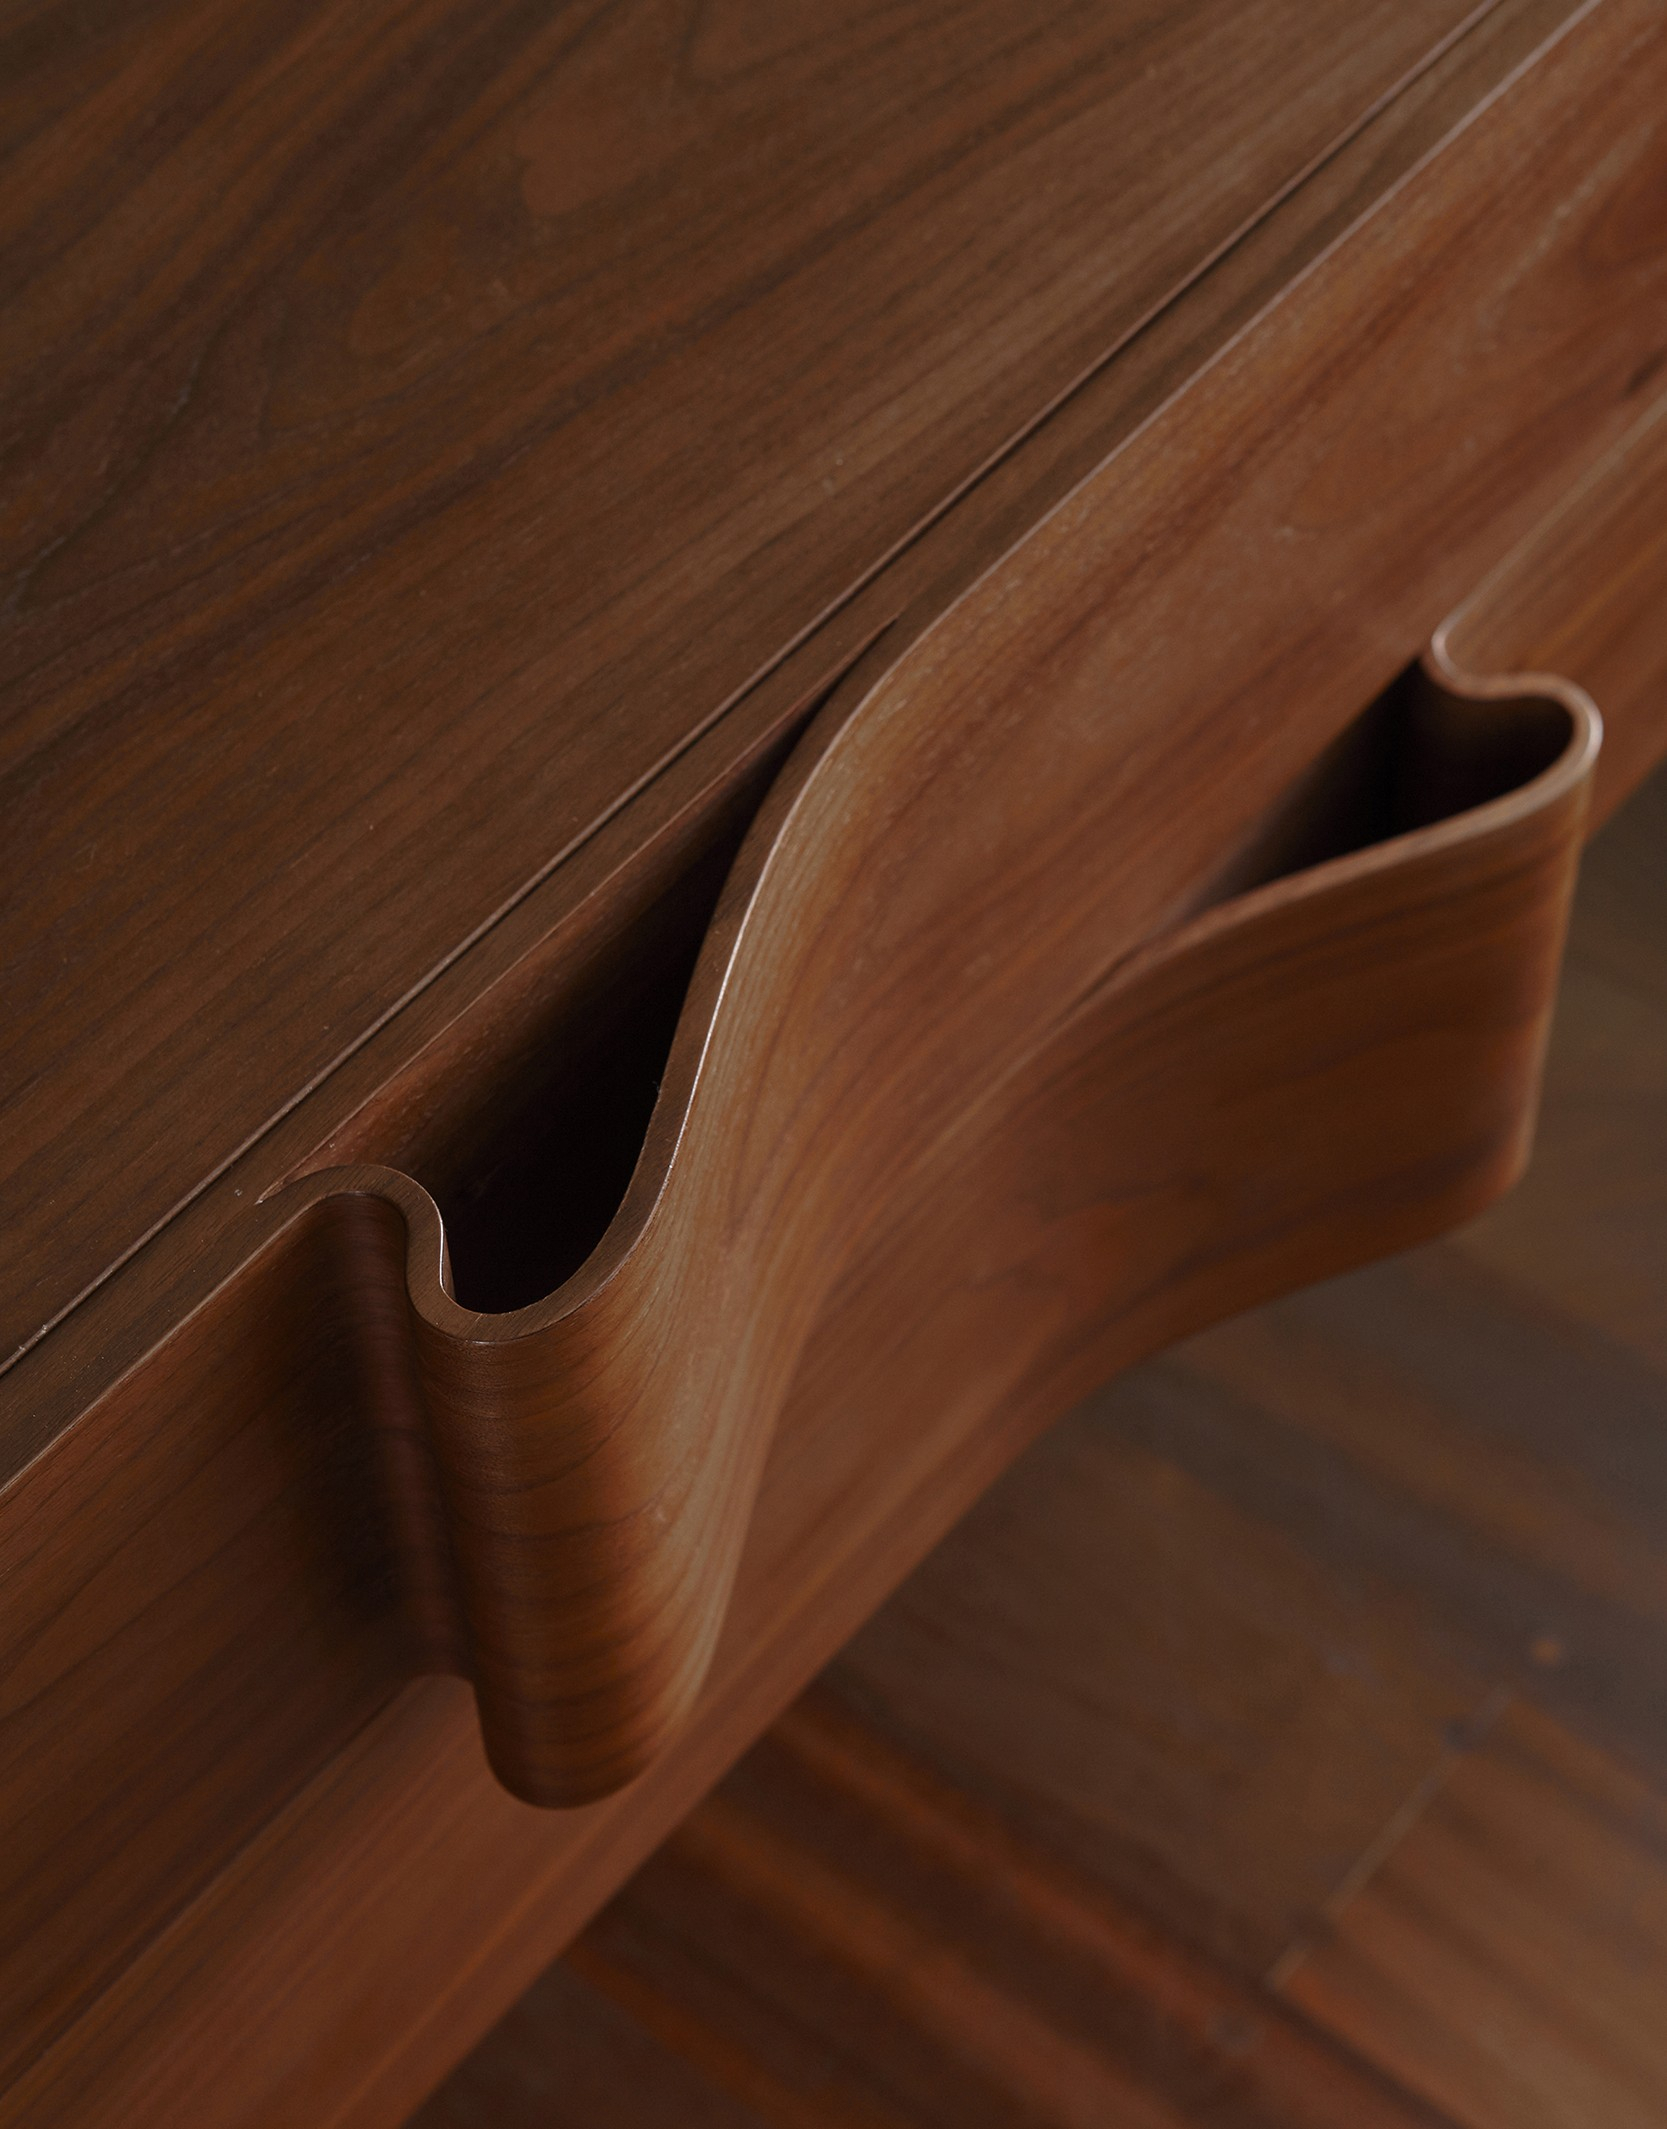 Onda Sideboard – Projects – Arthur Casas Pertaining To Strokes And Waves Credenzas (View 23 of 30)